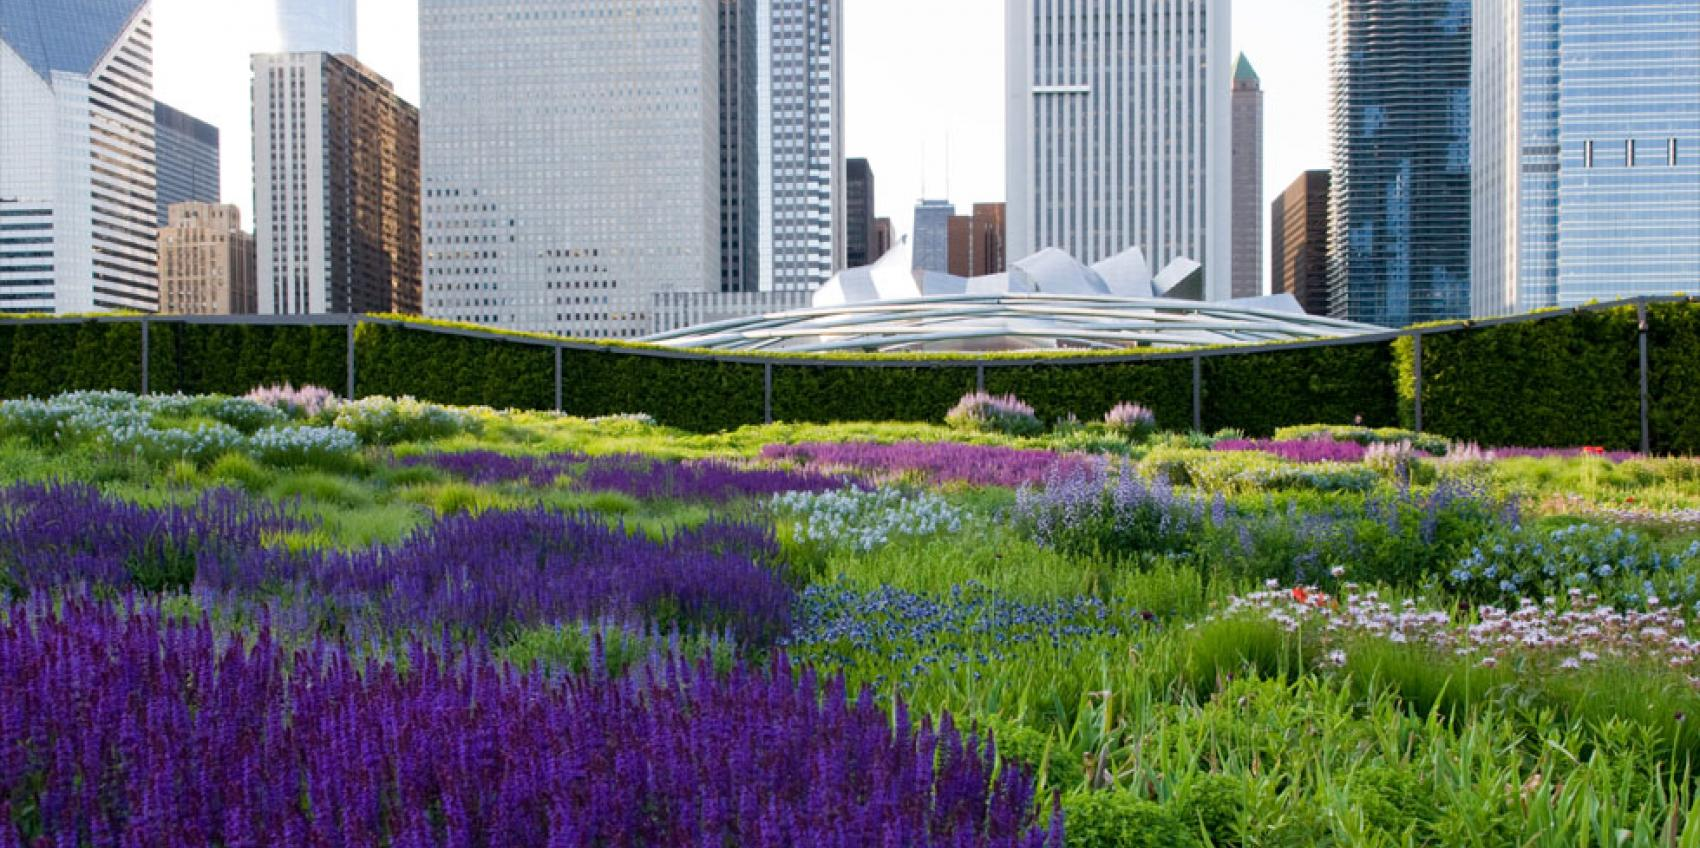 Big Shoulders hedge makes a protective backdrop in Lurie Garden, Chicago.